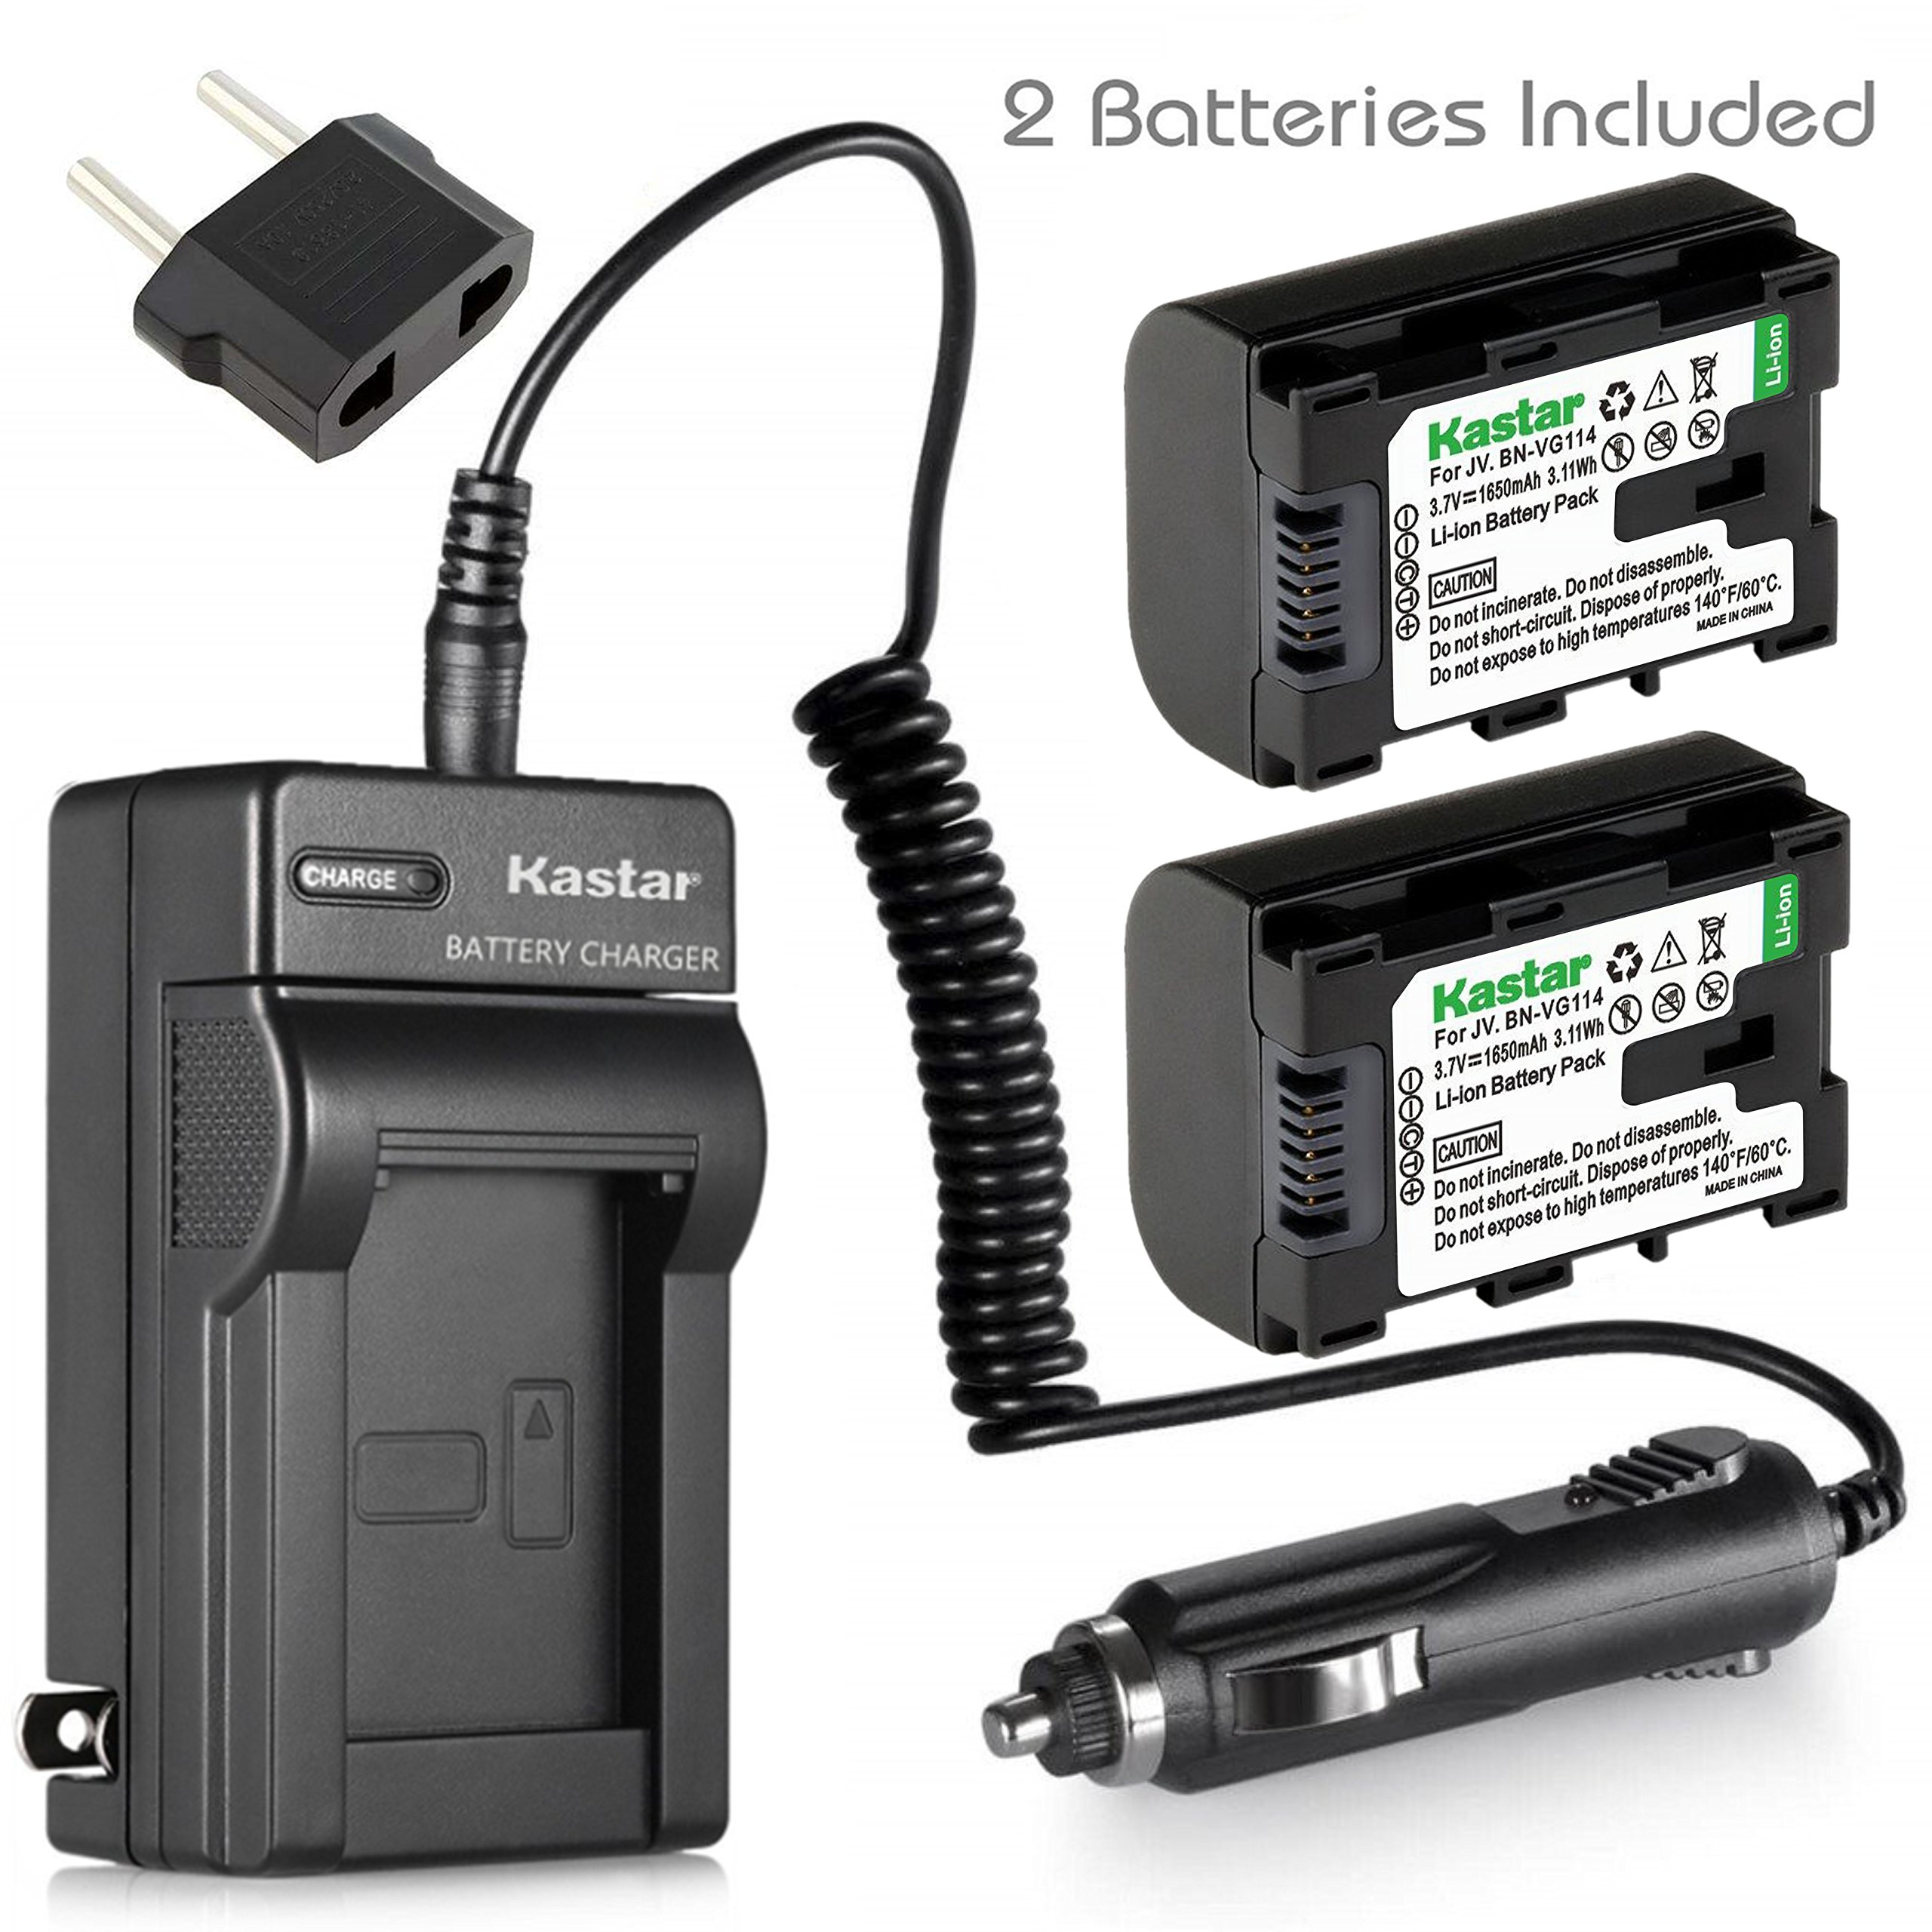 Battery (2-Pack) and Charger for JVC BN-VG107U, BN-VG108U, BN-VG114U, BN-VG121U Li-ion Rechargeable Battery Pack